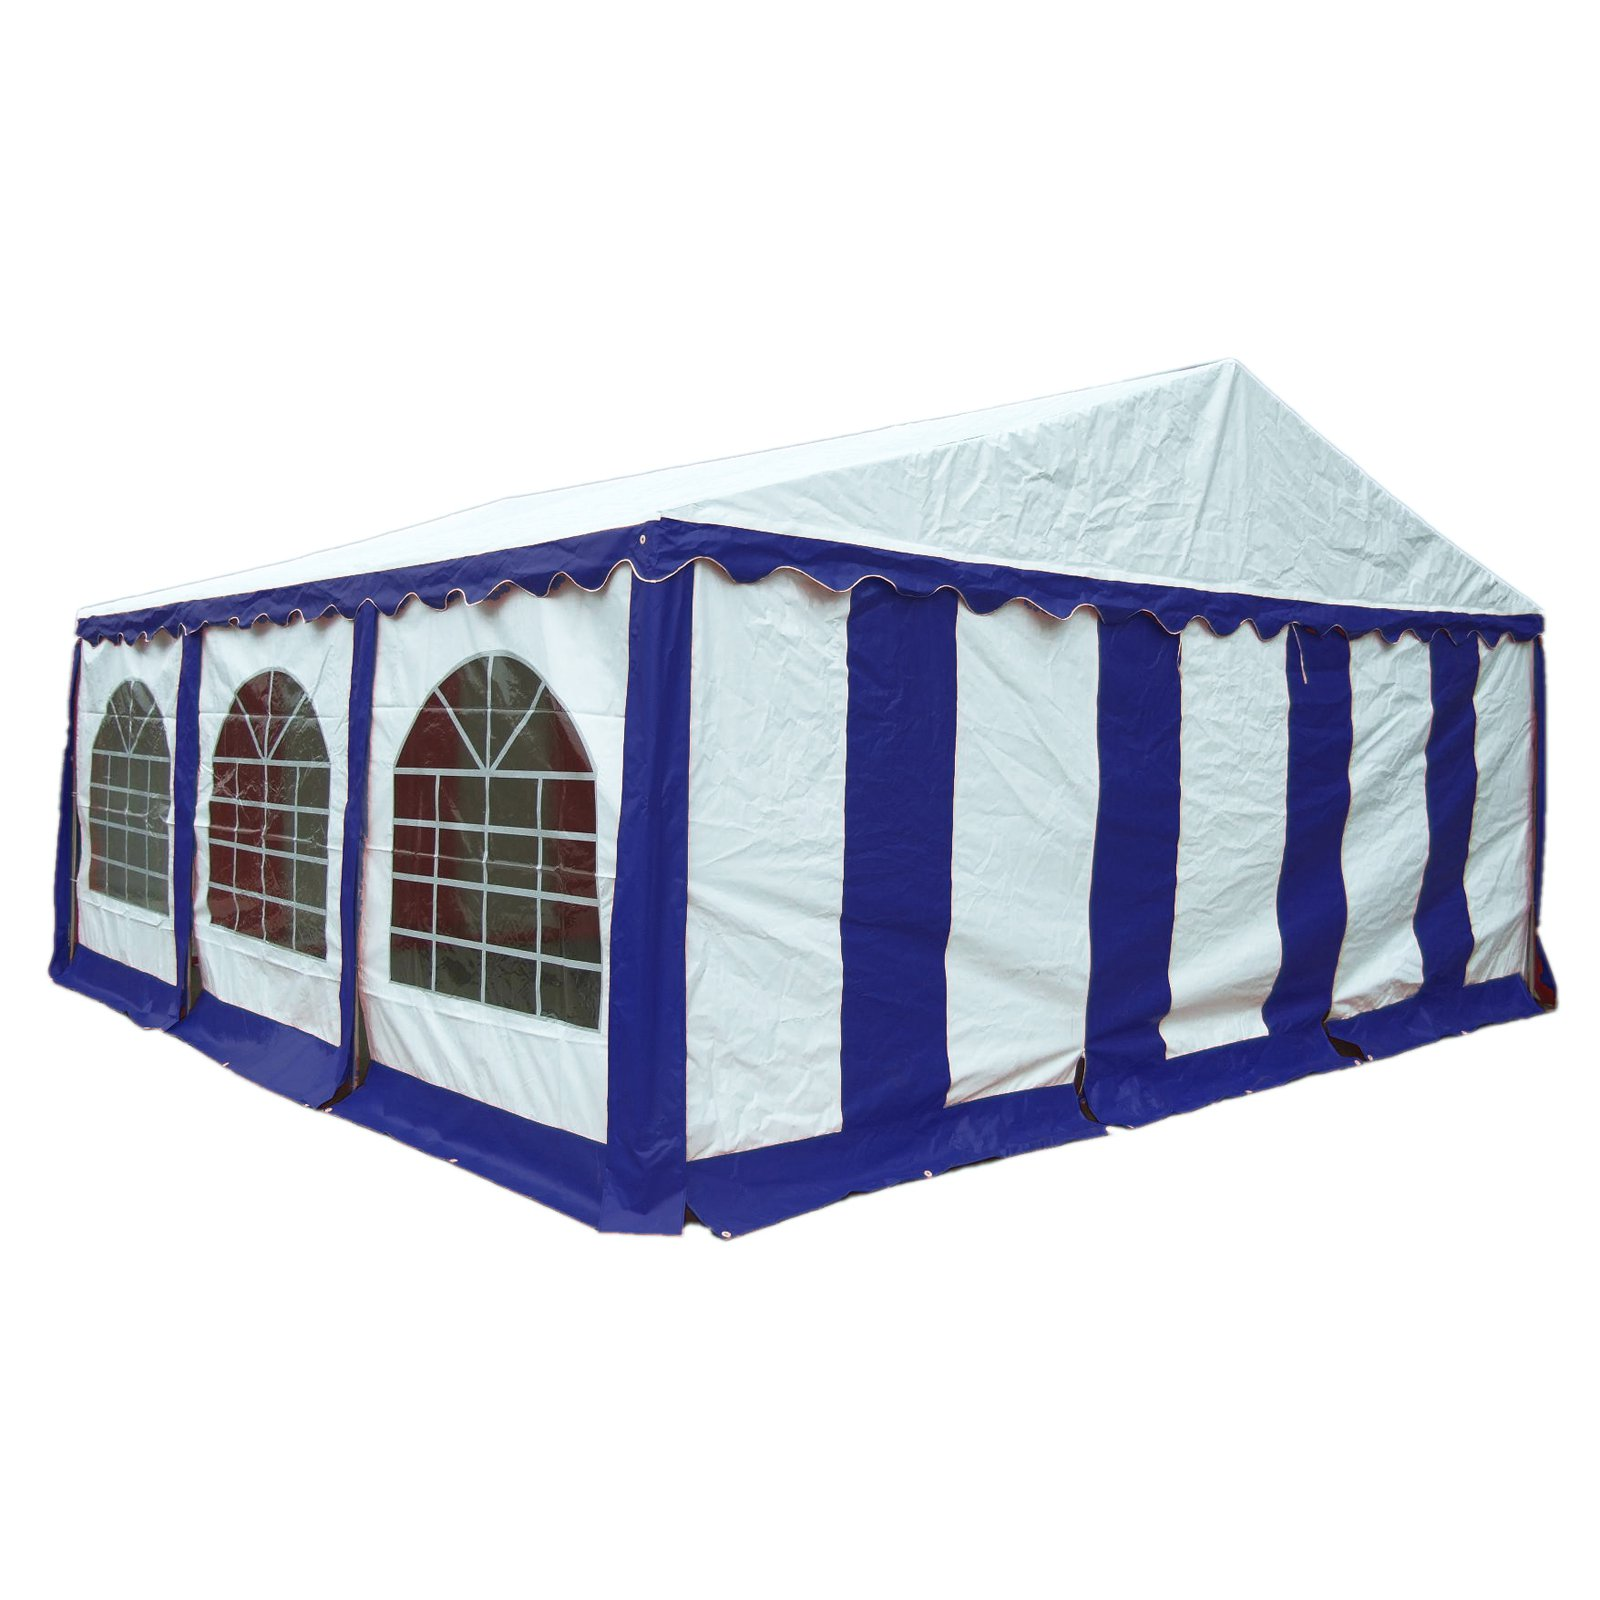 Enclosure Kit with Windows for Party Tent, 20' x 20' 6m x 6m, Blue White, (Frame and Cover Not Included) by ShelterLogic